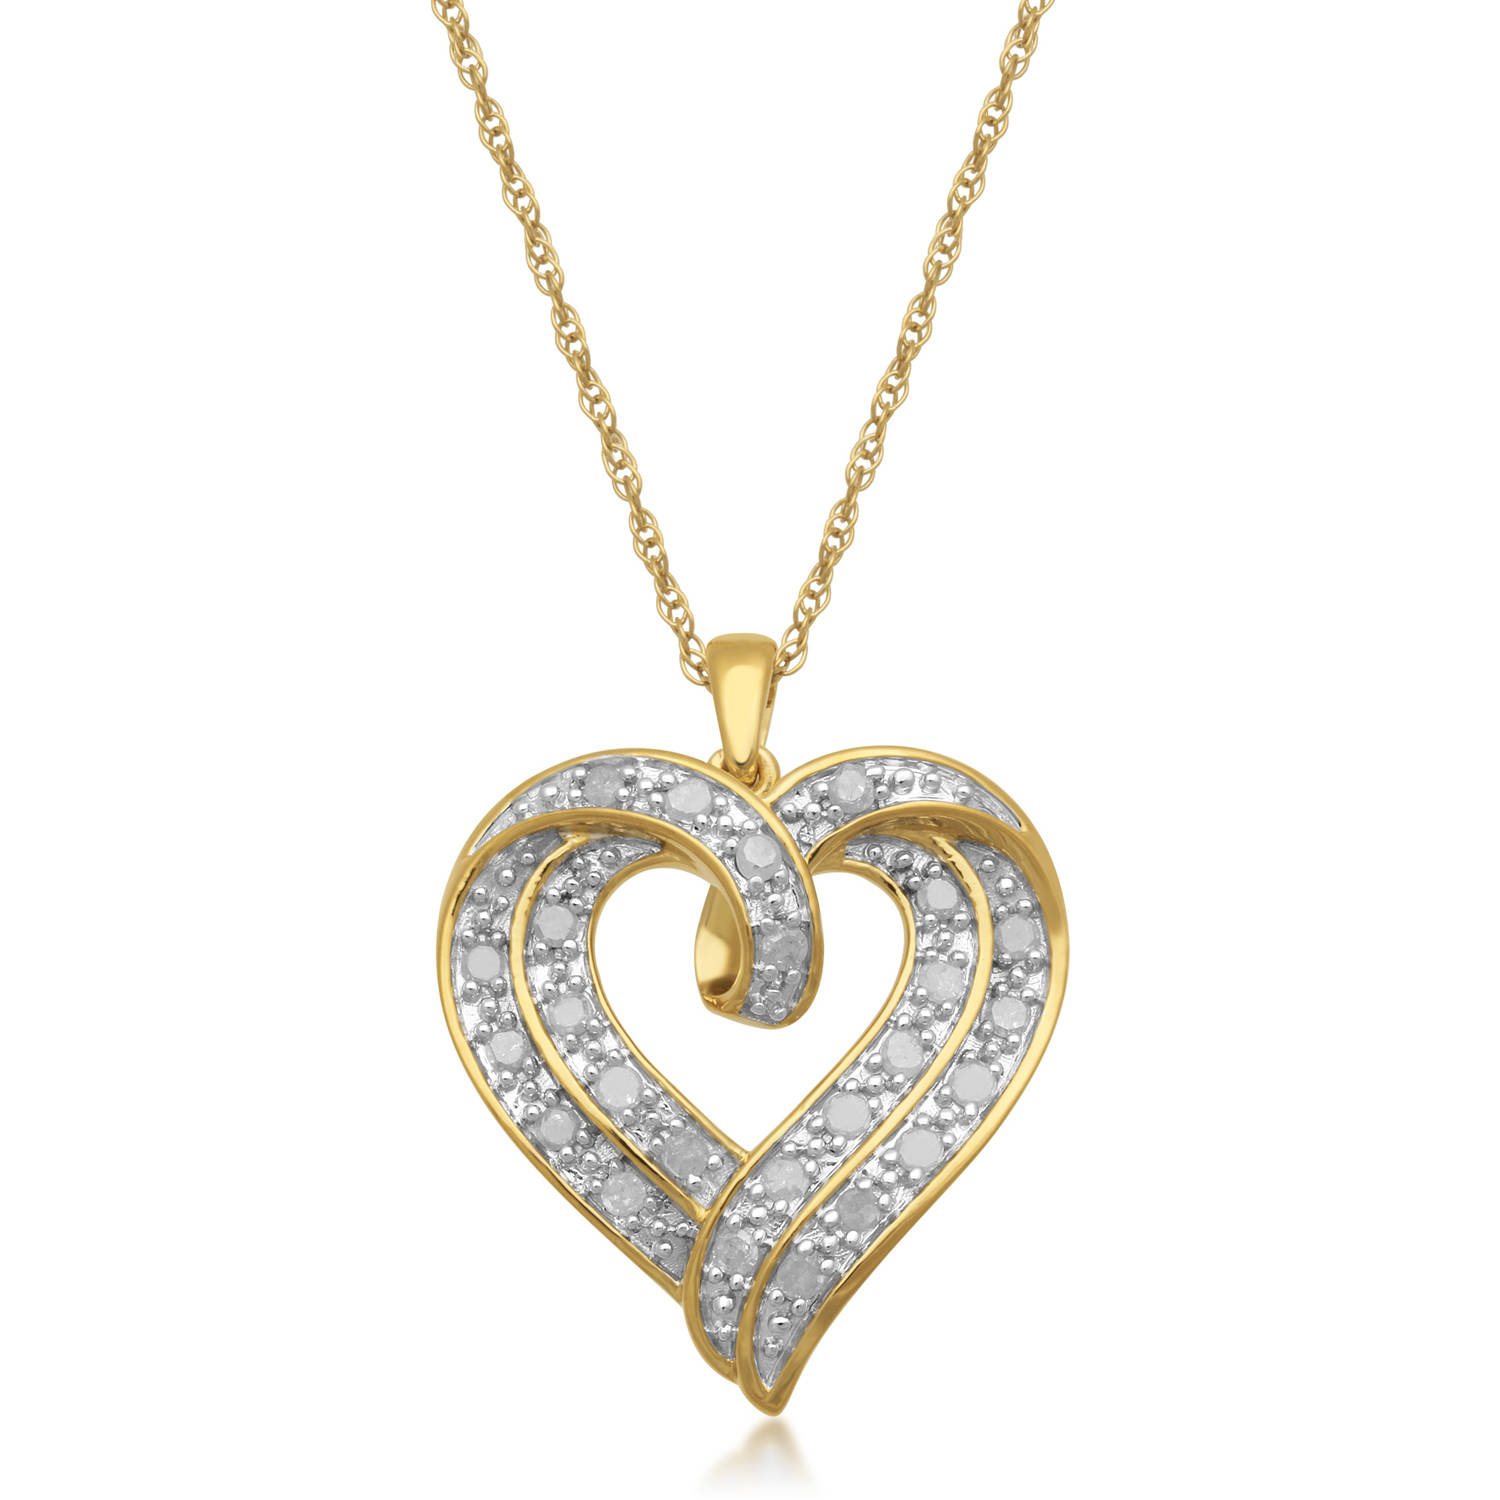 1/2 Carat T.W. White Diamond Heart Pendant in 18kt Yellow Gold over Sterling Silver